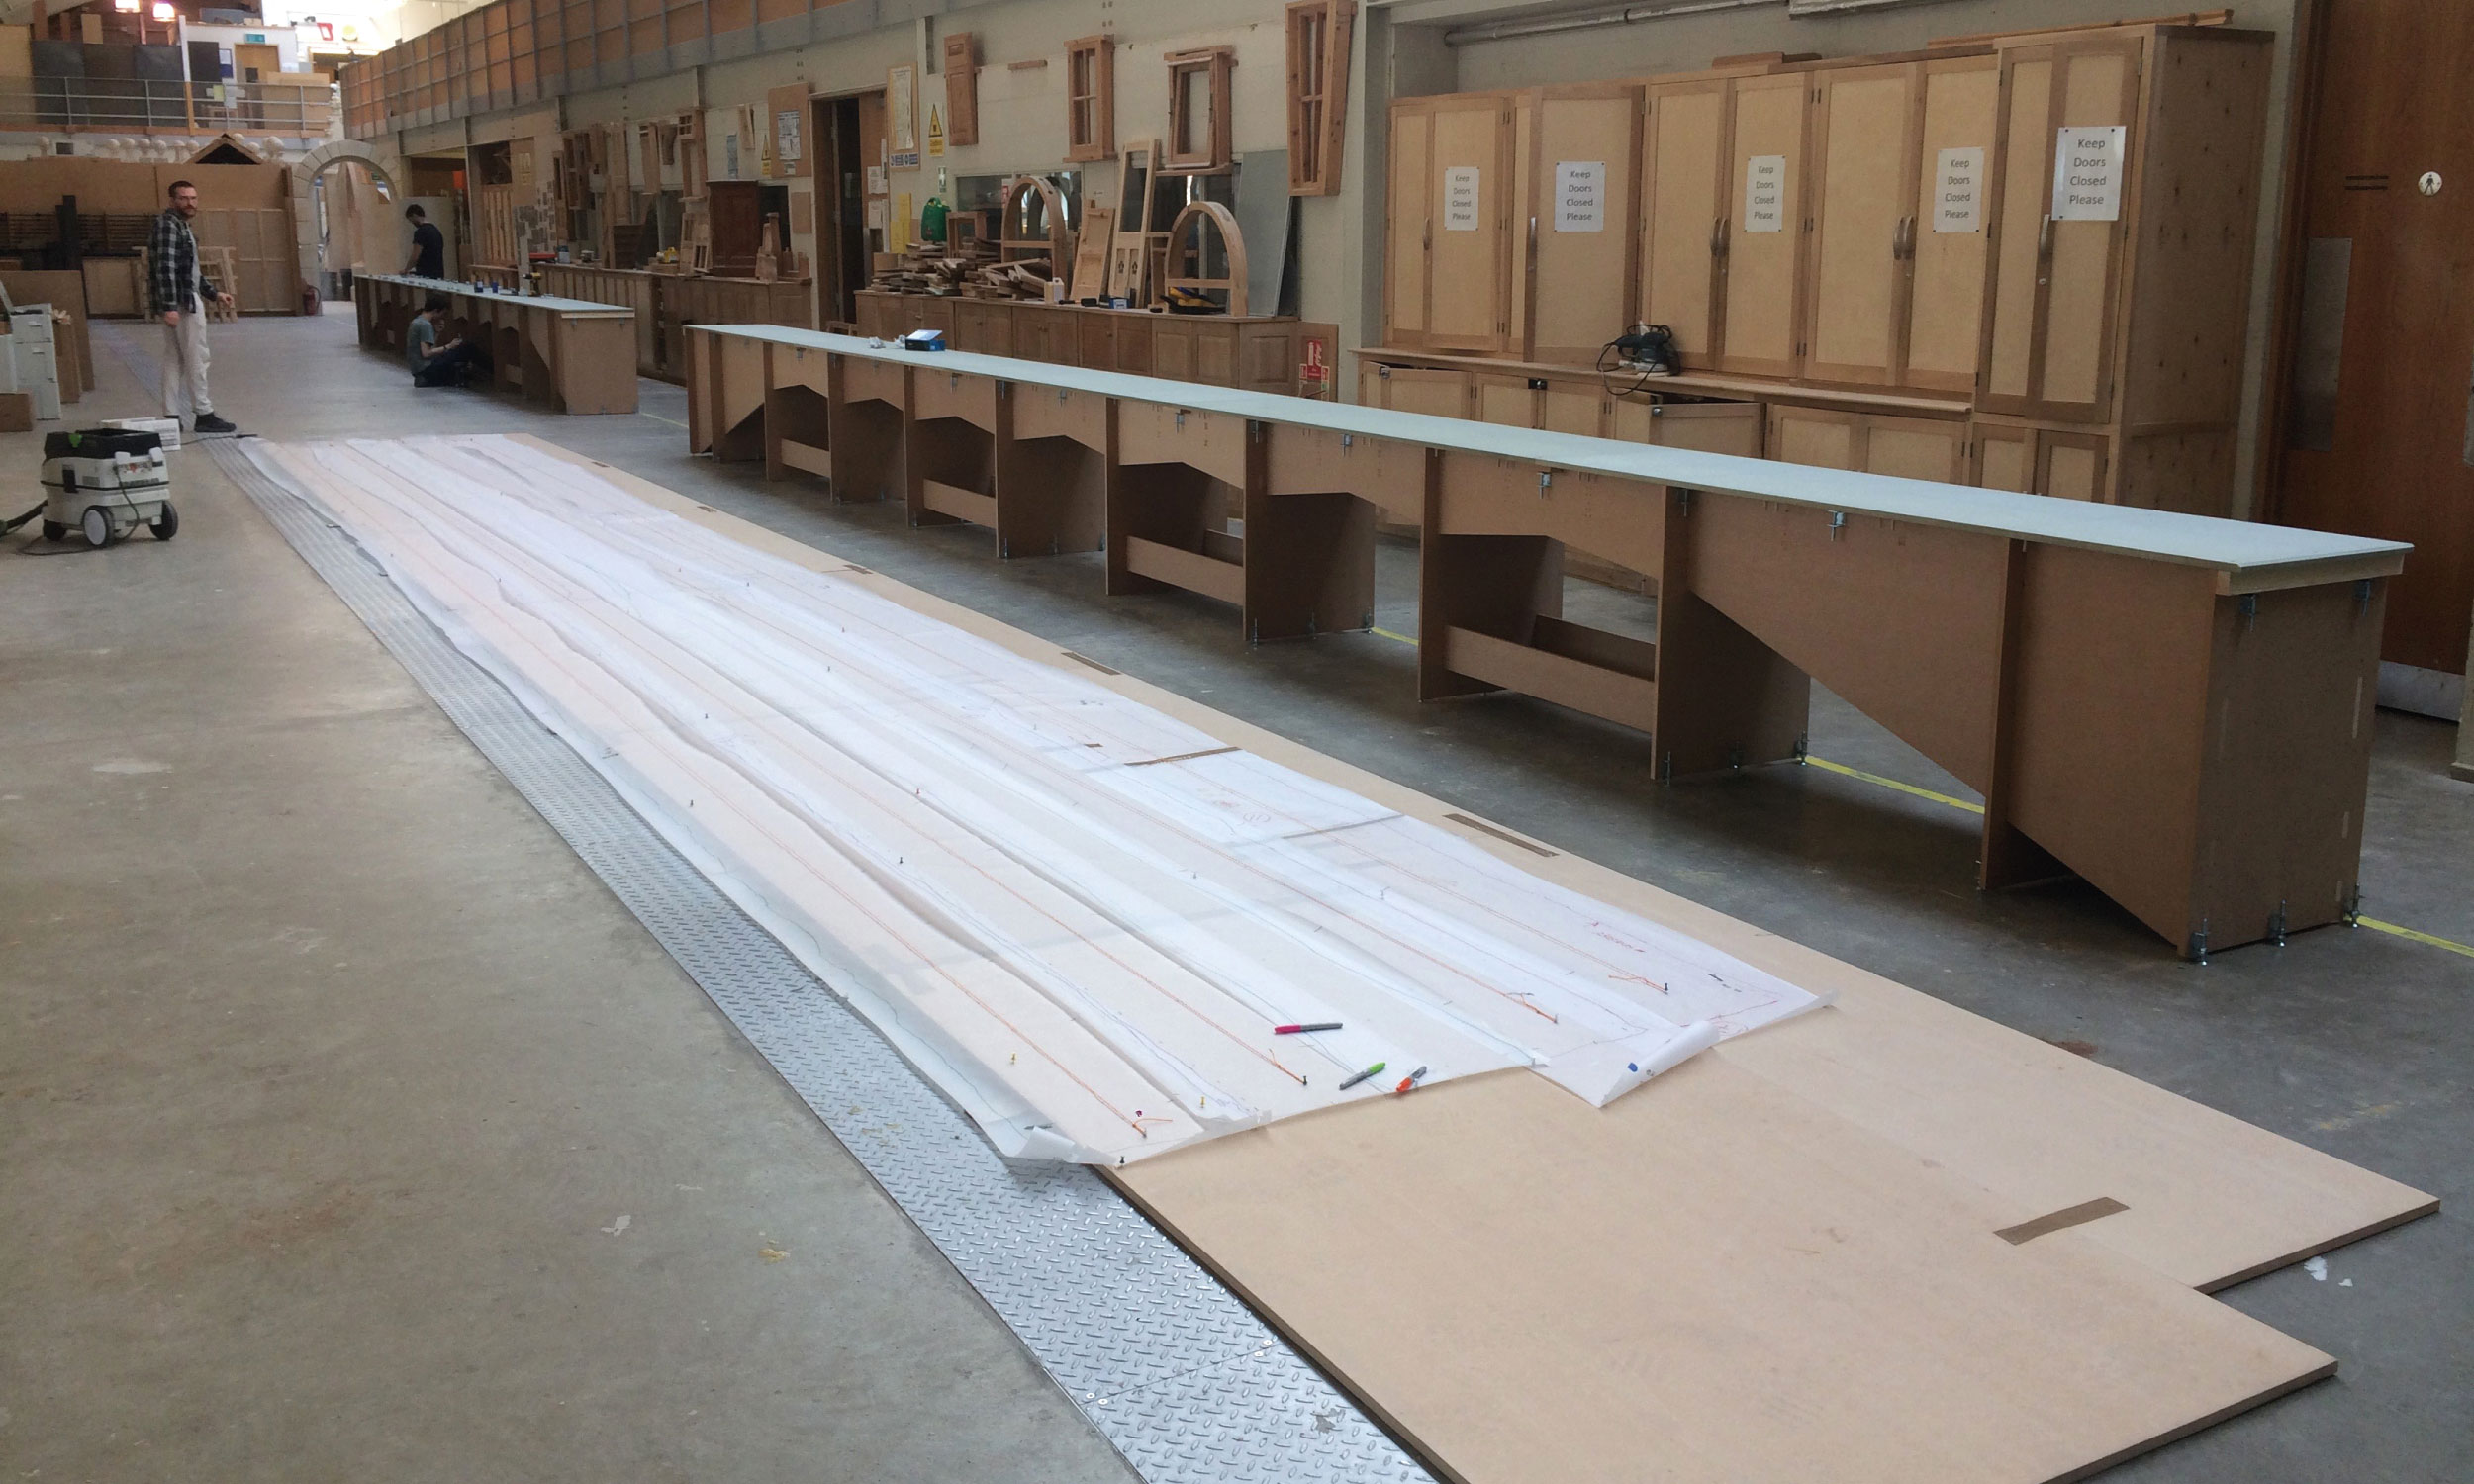 The 29 metre planer bed without the planer and scissor bed extensions